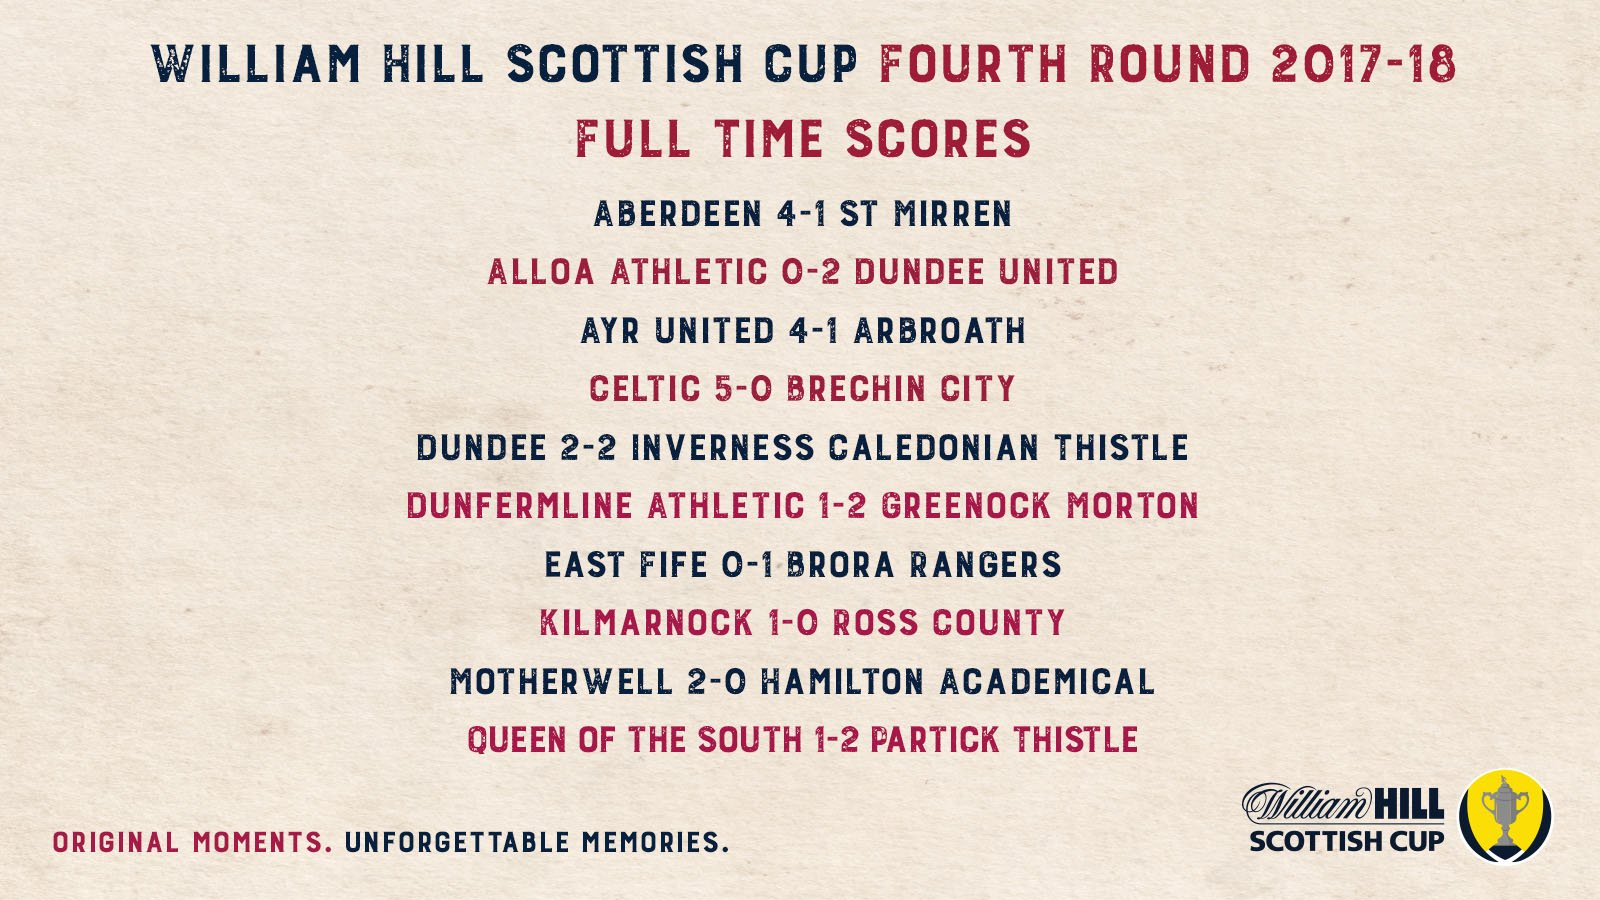 Full Time scores from the Fourth Round of the Scottish Cup.